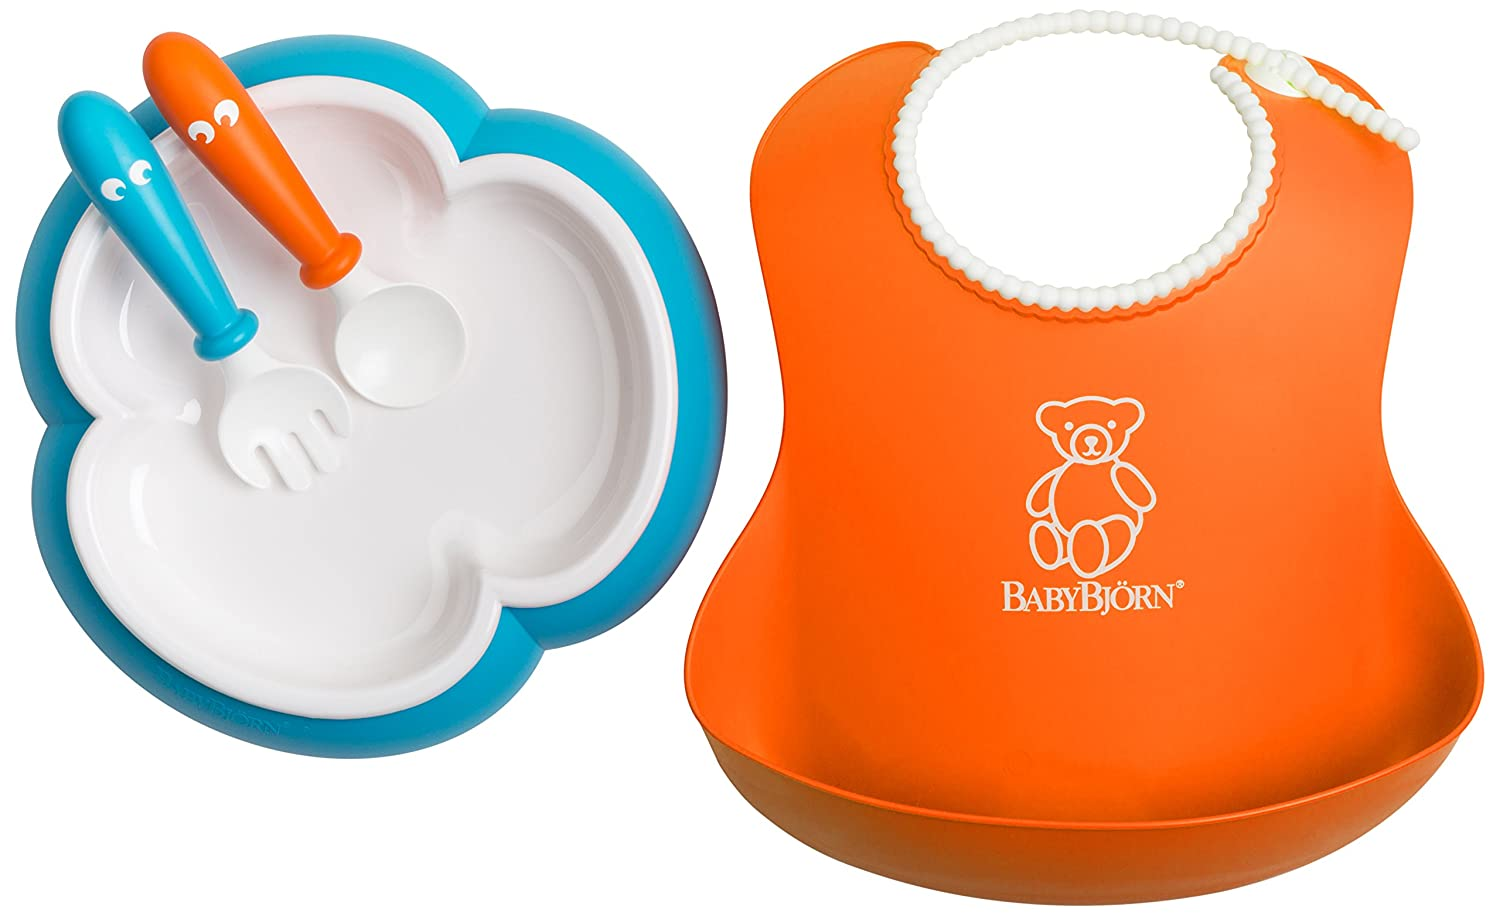 BABYBJORN Baby Feeding Set, Orange/Turquoise Baby Bjorn 078082